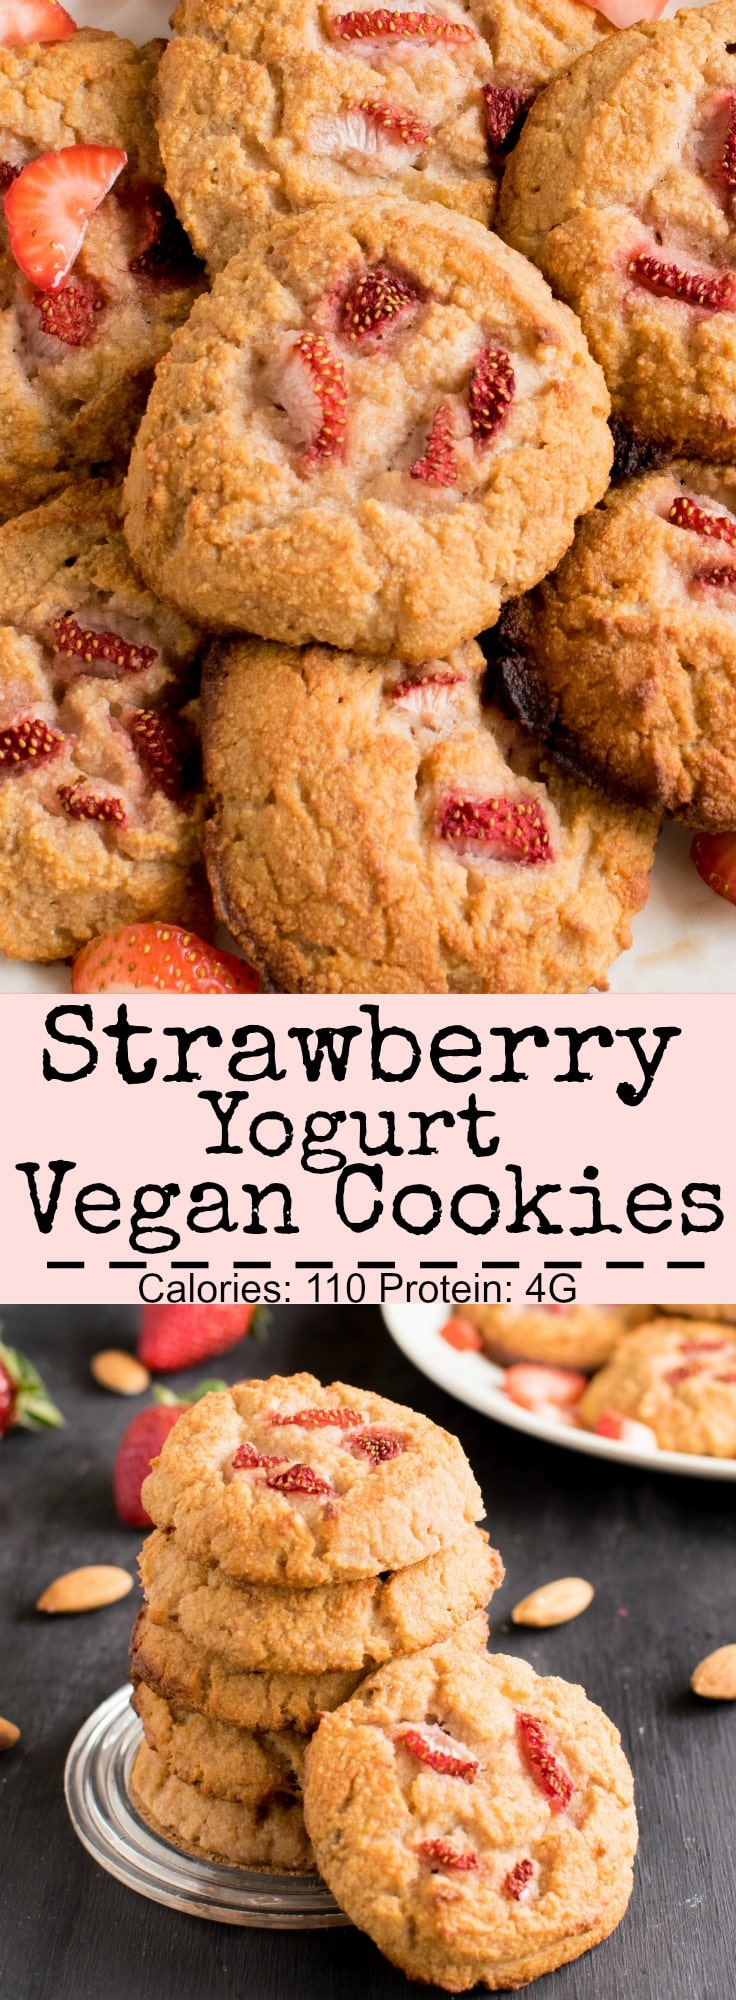 Strawberry Yogurt Vegan Cookies | gluten free and paleo these cookies healthy and delicious with a subtle flavor of fresh strawberries. My little one love these soft, moist and chewy cake like cookies | kiipfit.com